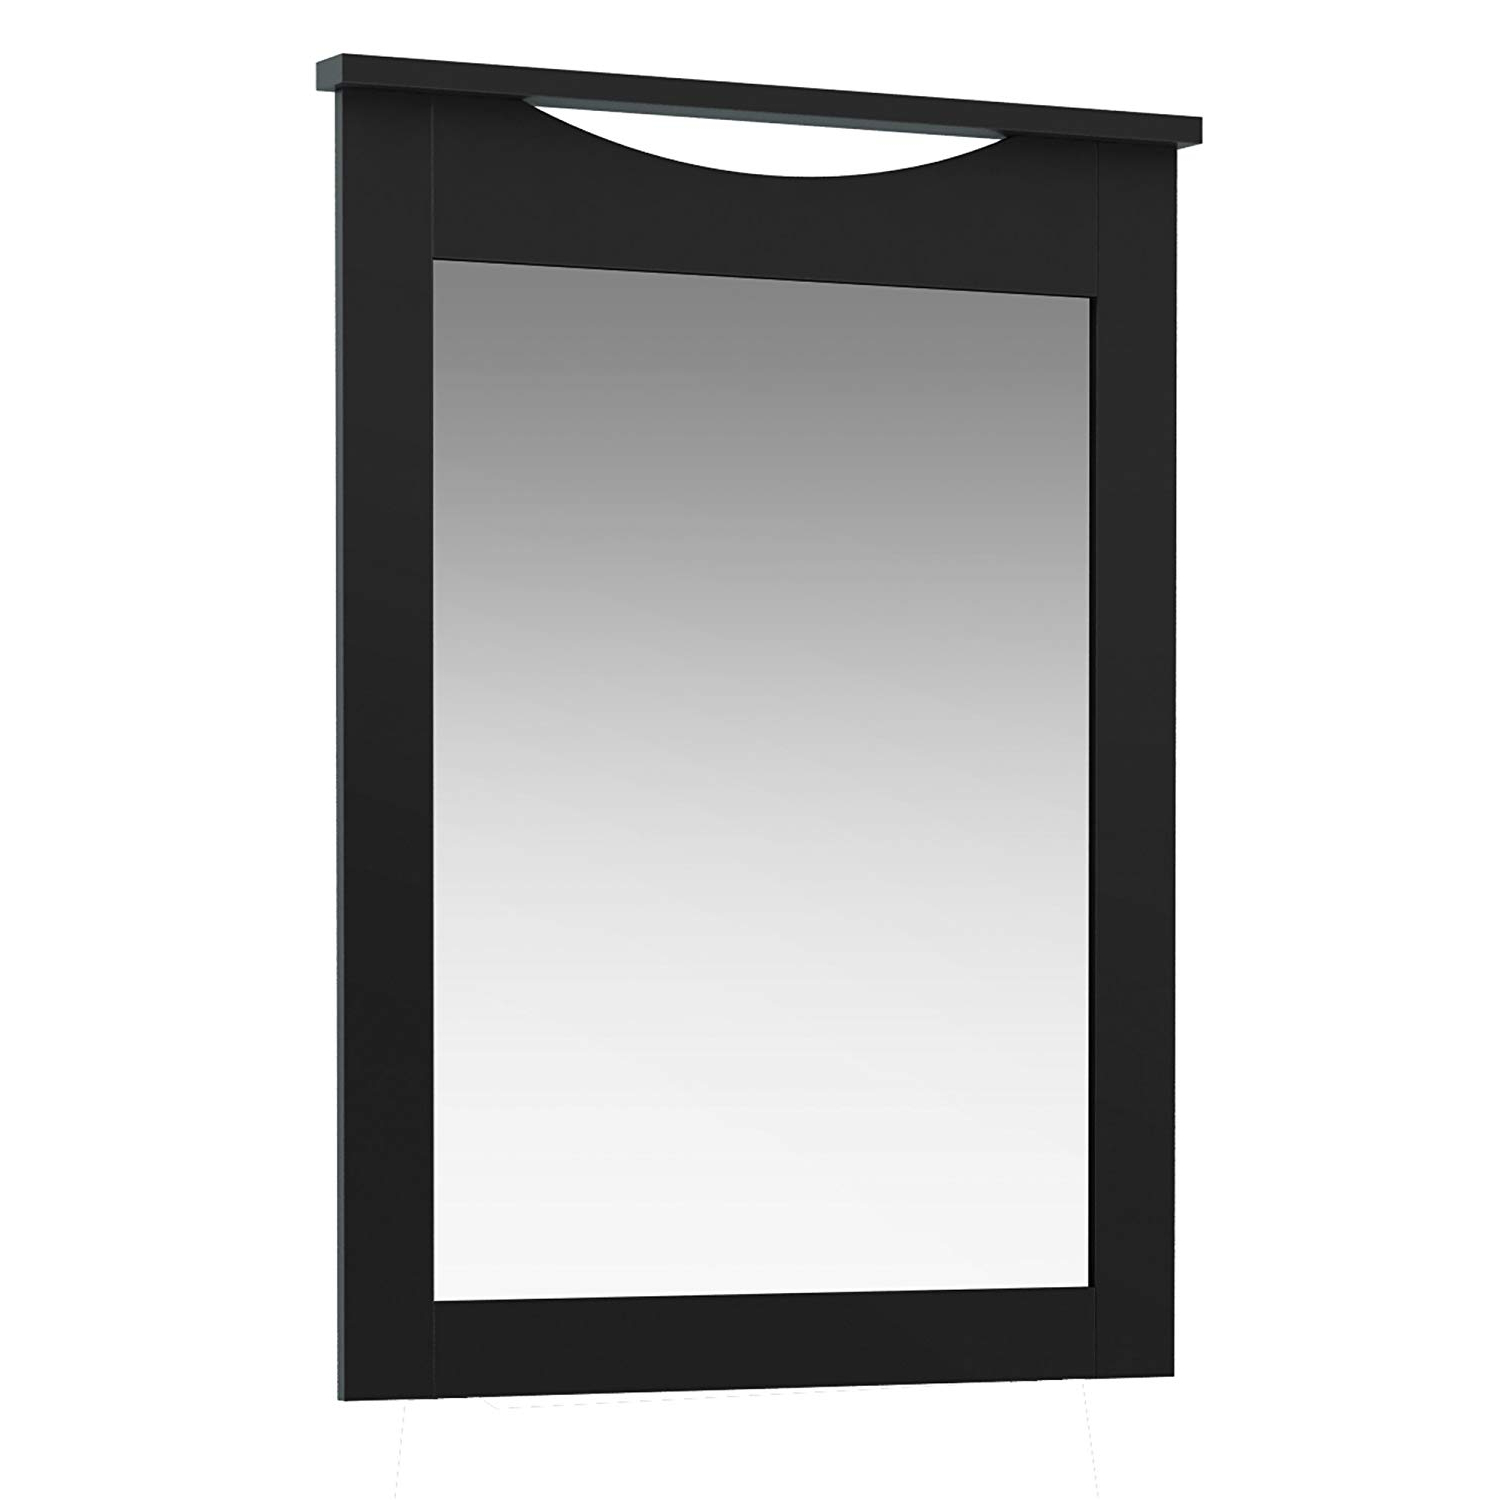 Trendy Wall Mirrors In Most Current South Shore Contemporary Wall Mirror, Pure Black (View 16 of 20)